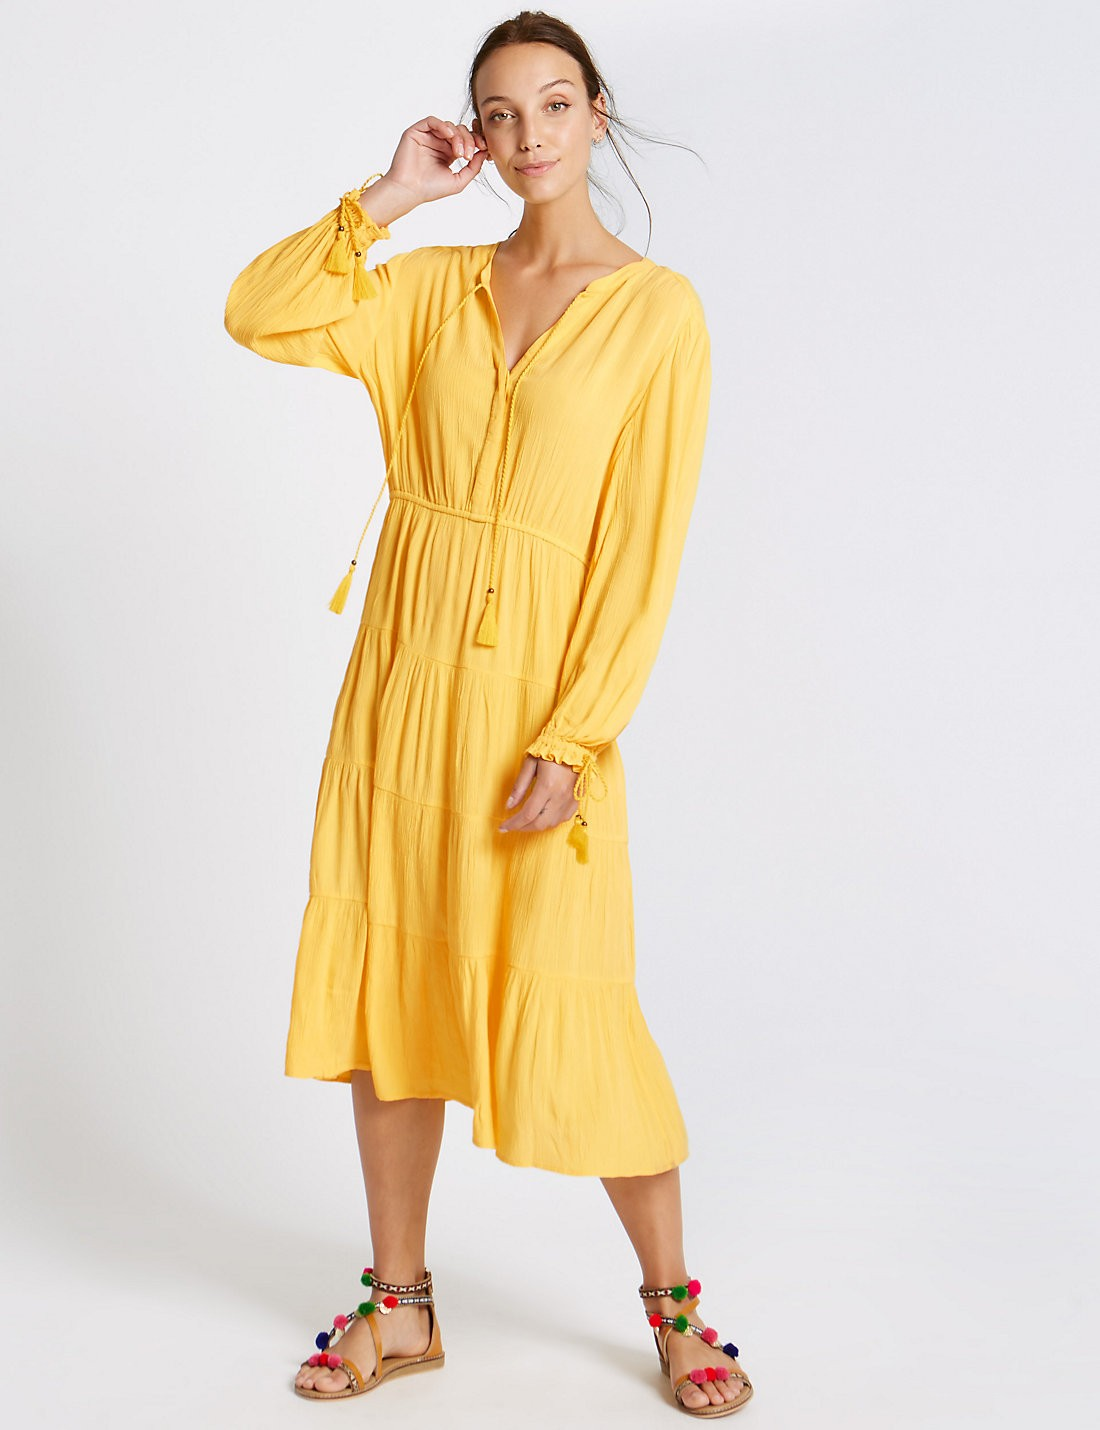 tiered yellow dress